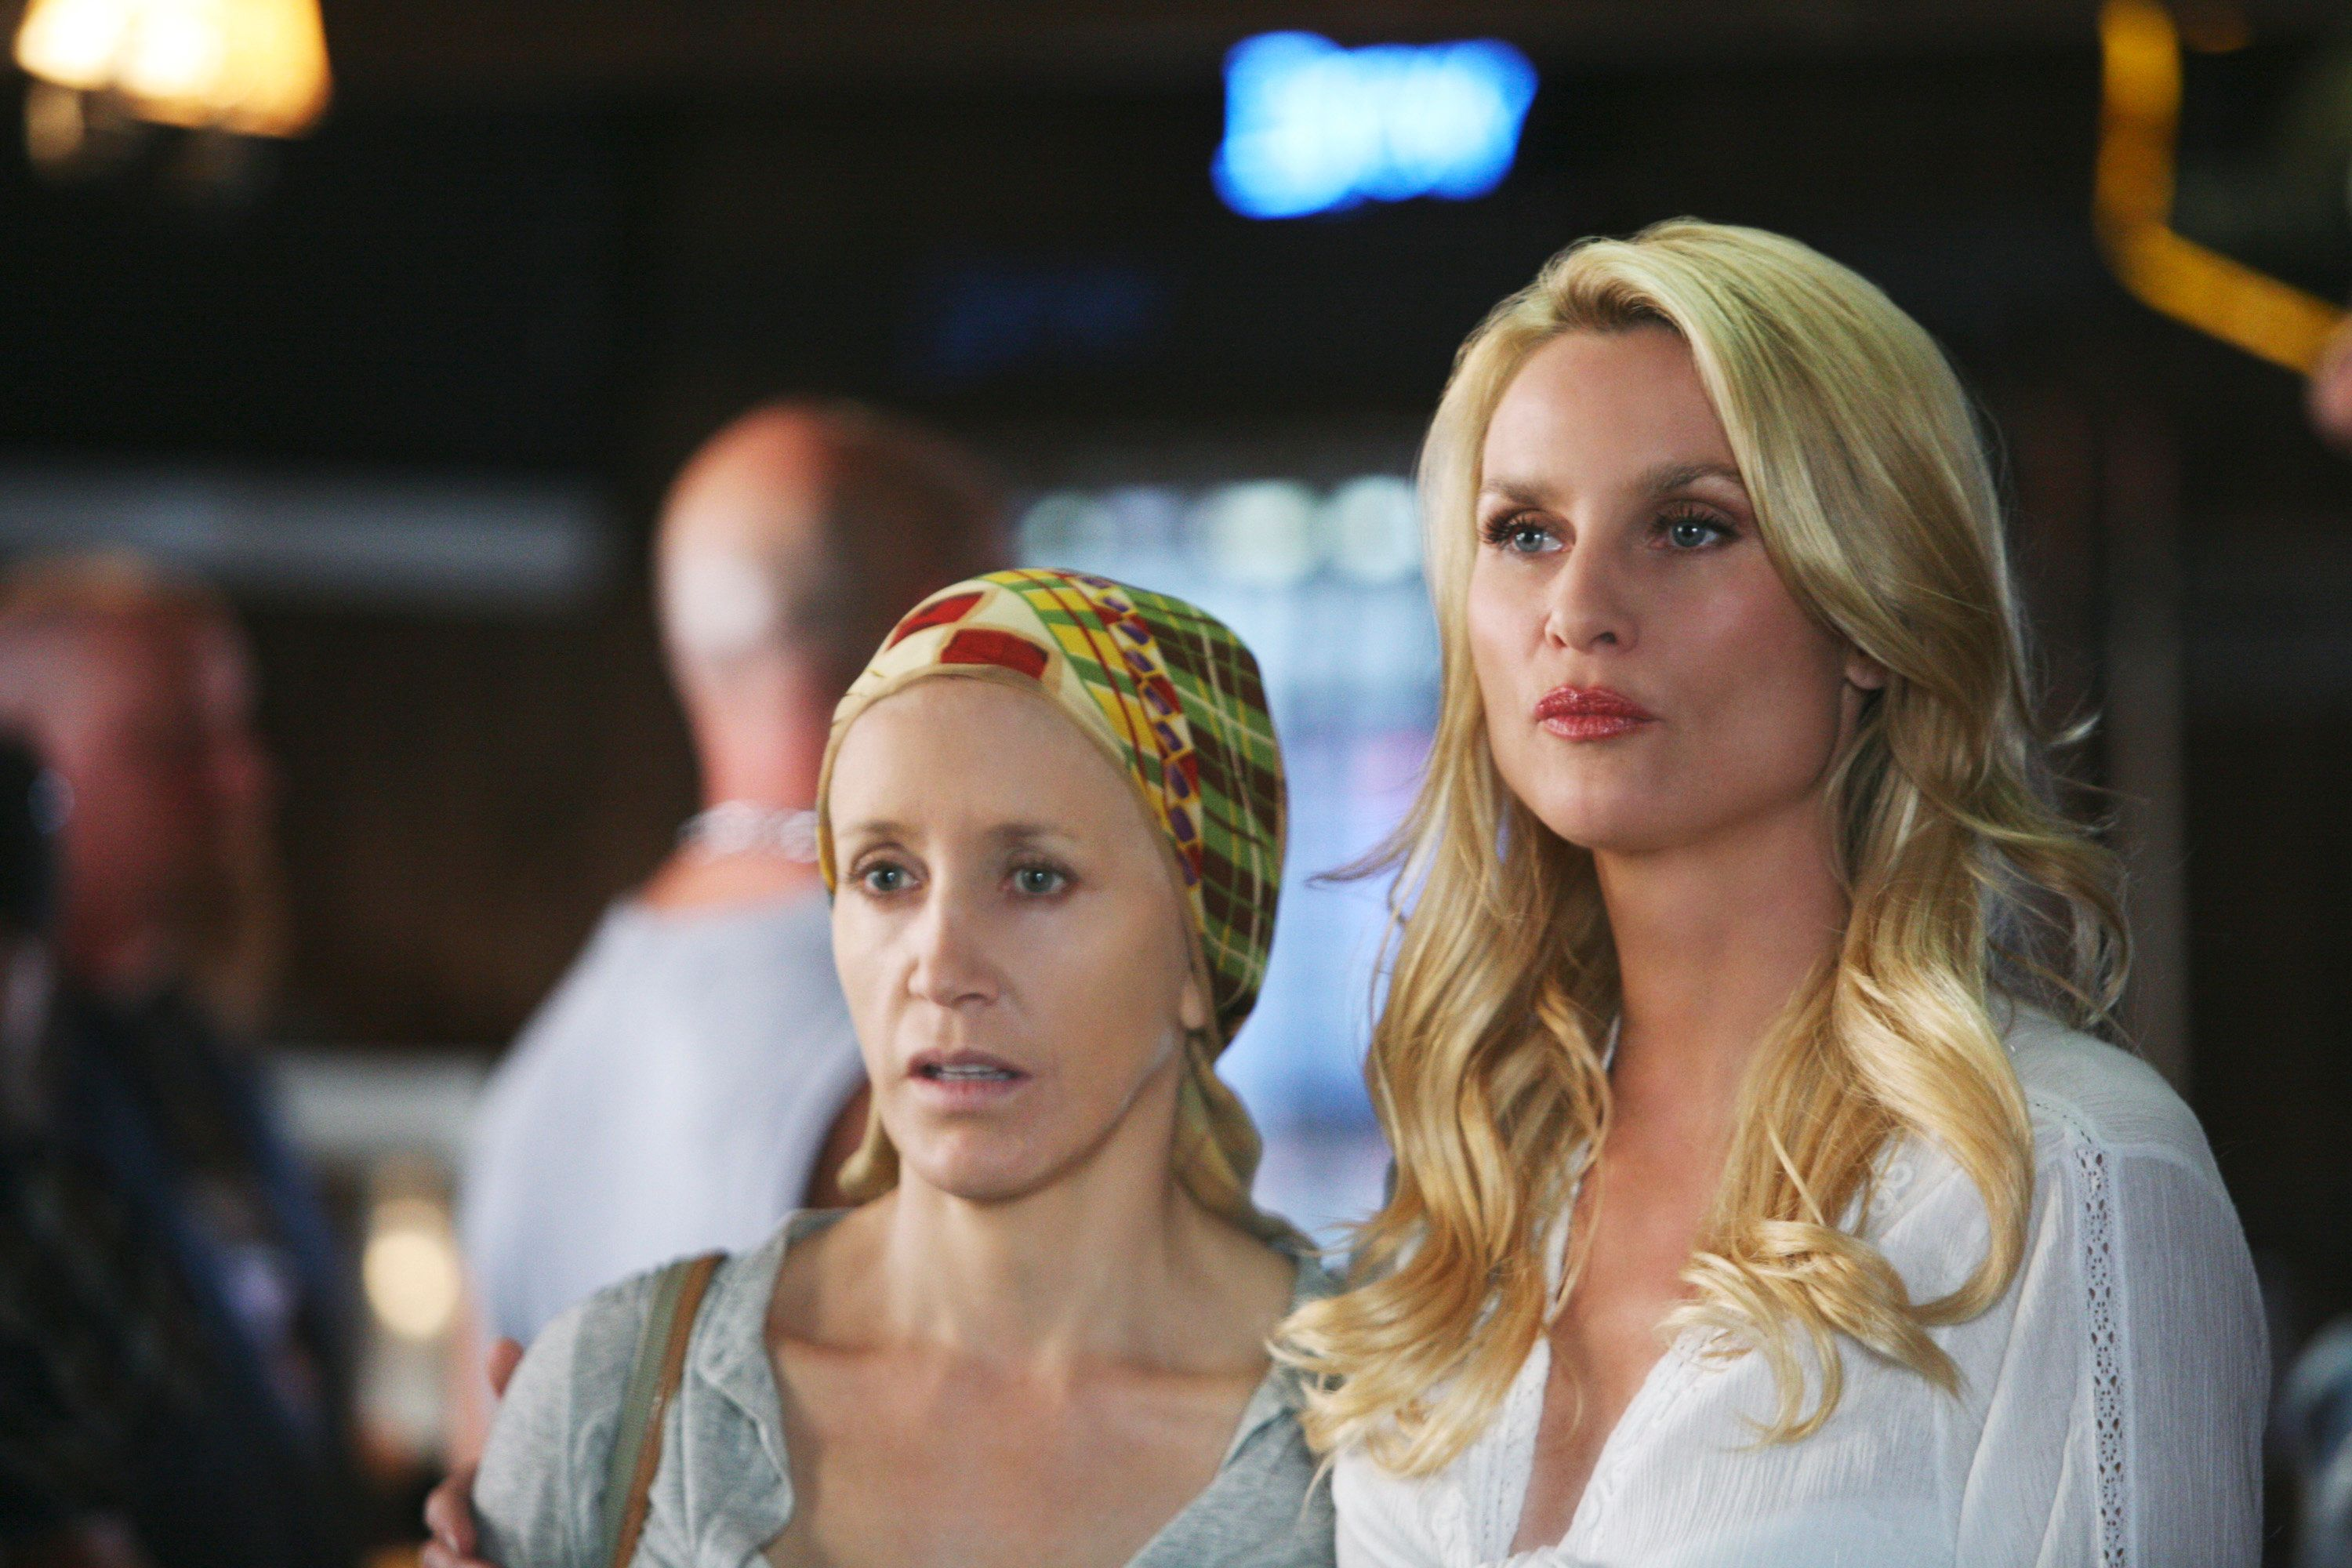 Nicolette Sheridan Reacts To Felicity Huffman's 'Disgraceful' College Cheating